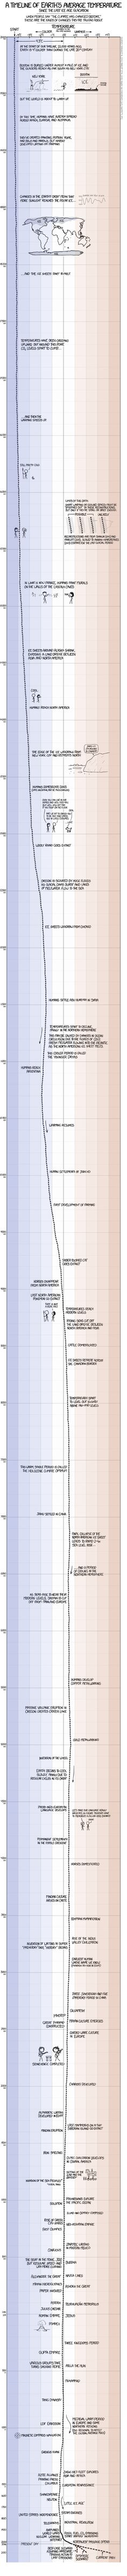 A Timeline of Earth's Average Temperature  A Must-See Climate Change Illustration.